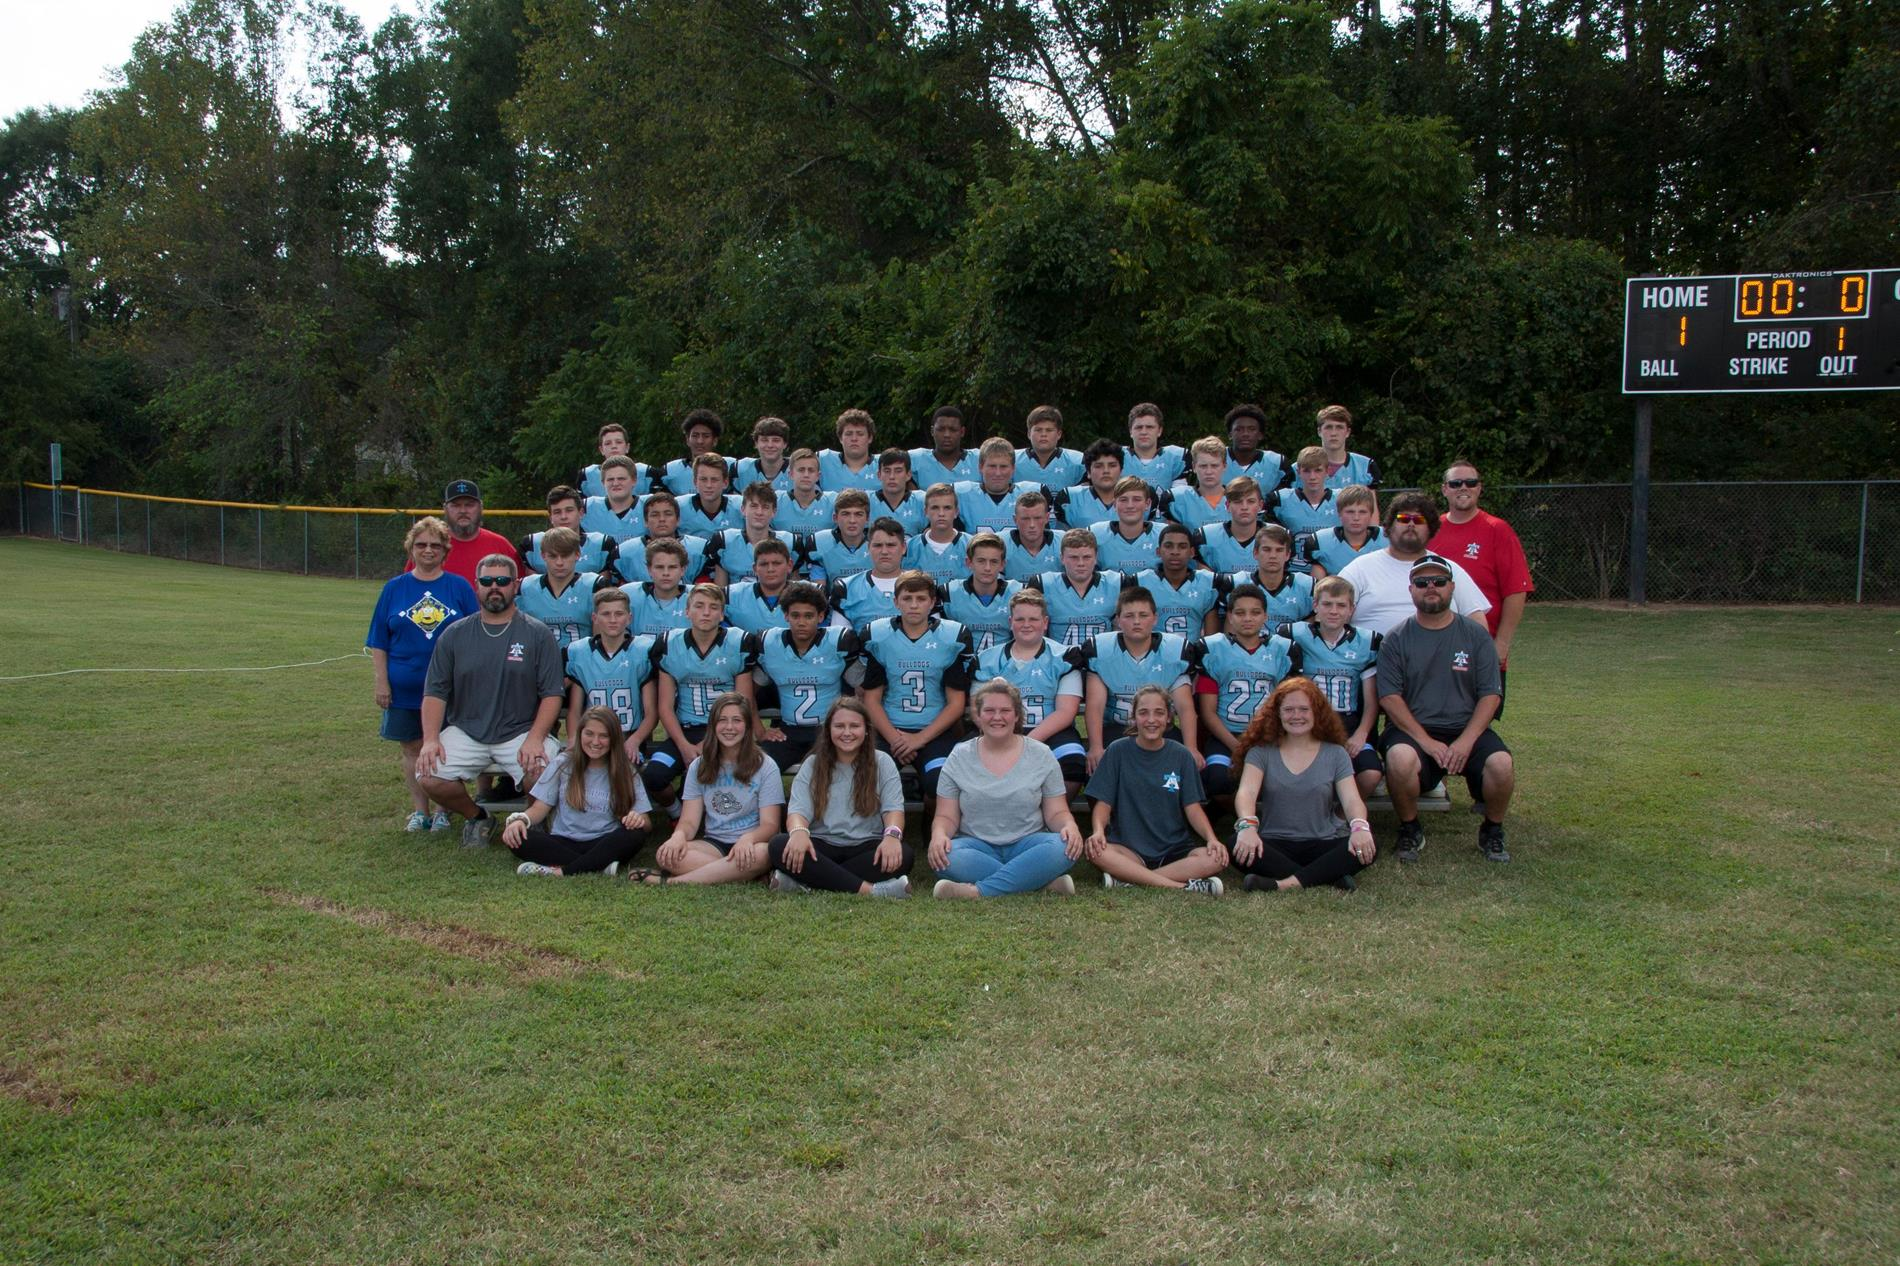 19-20 Football Team Photo